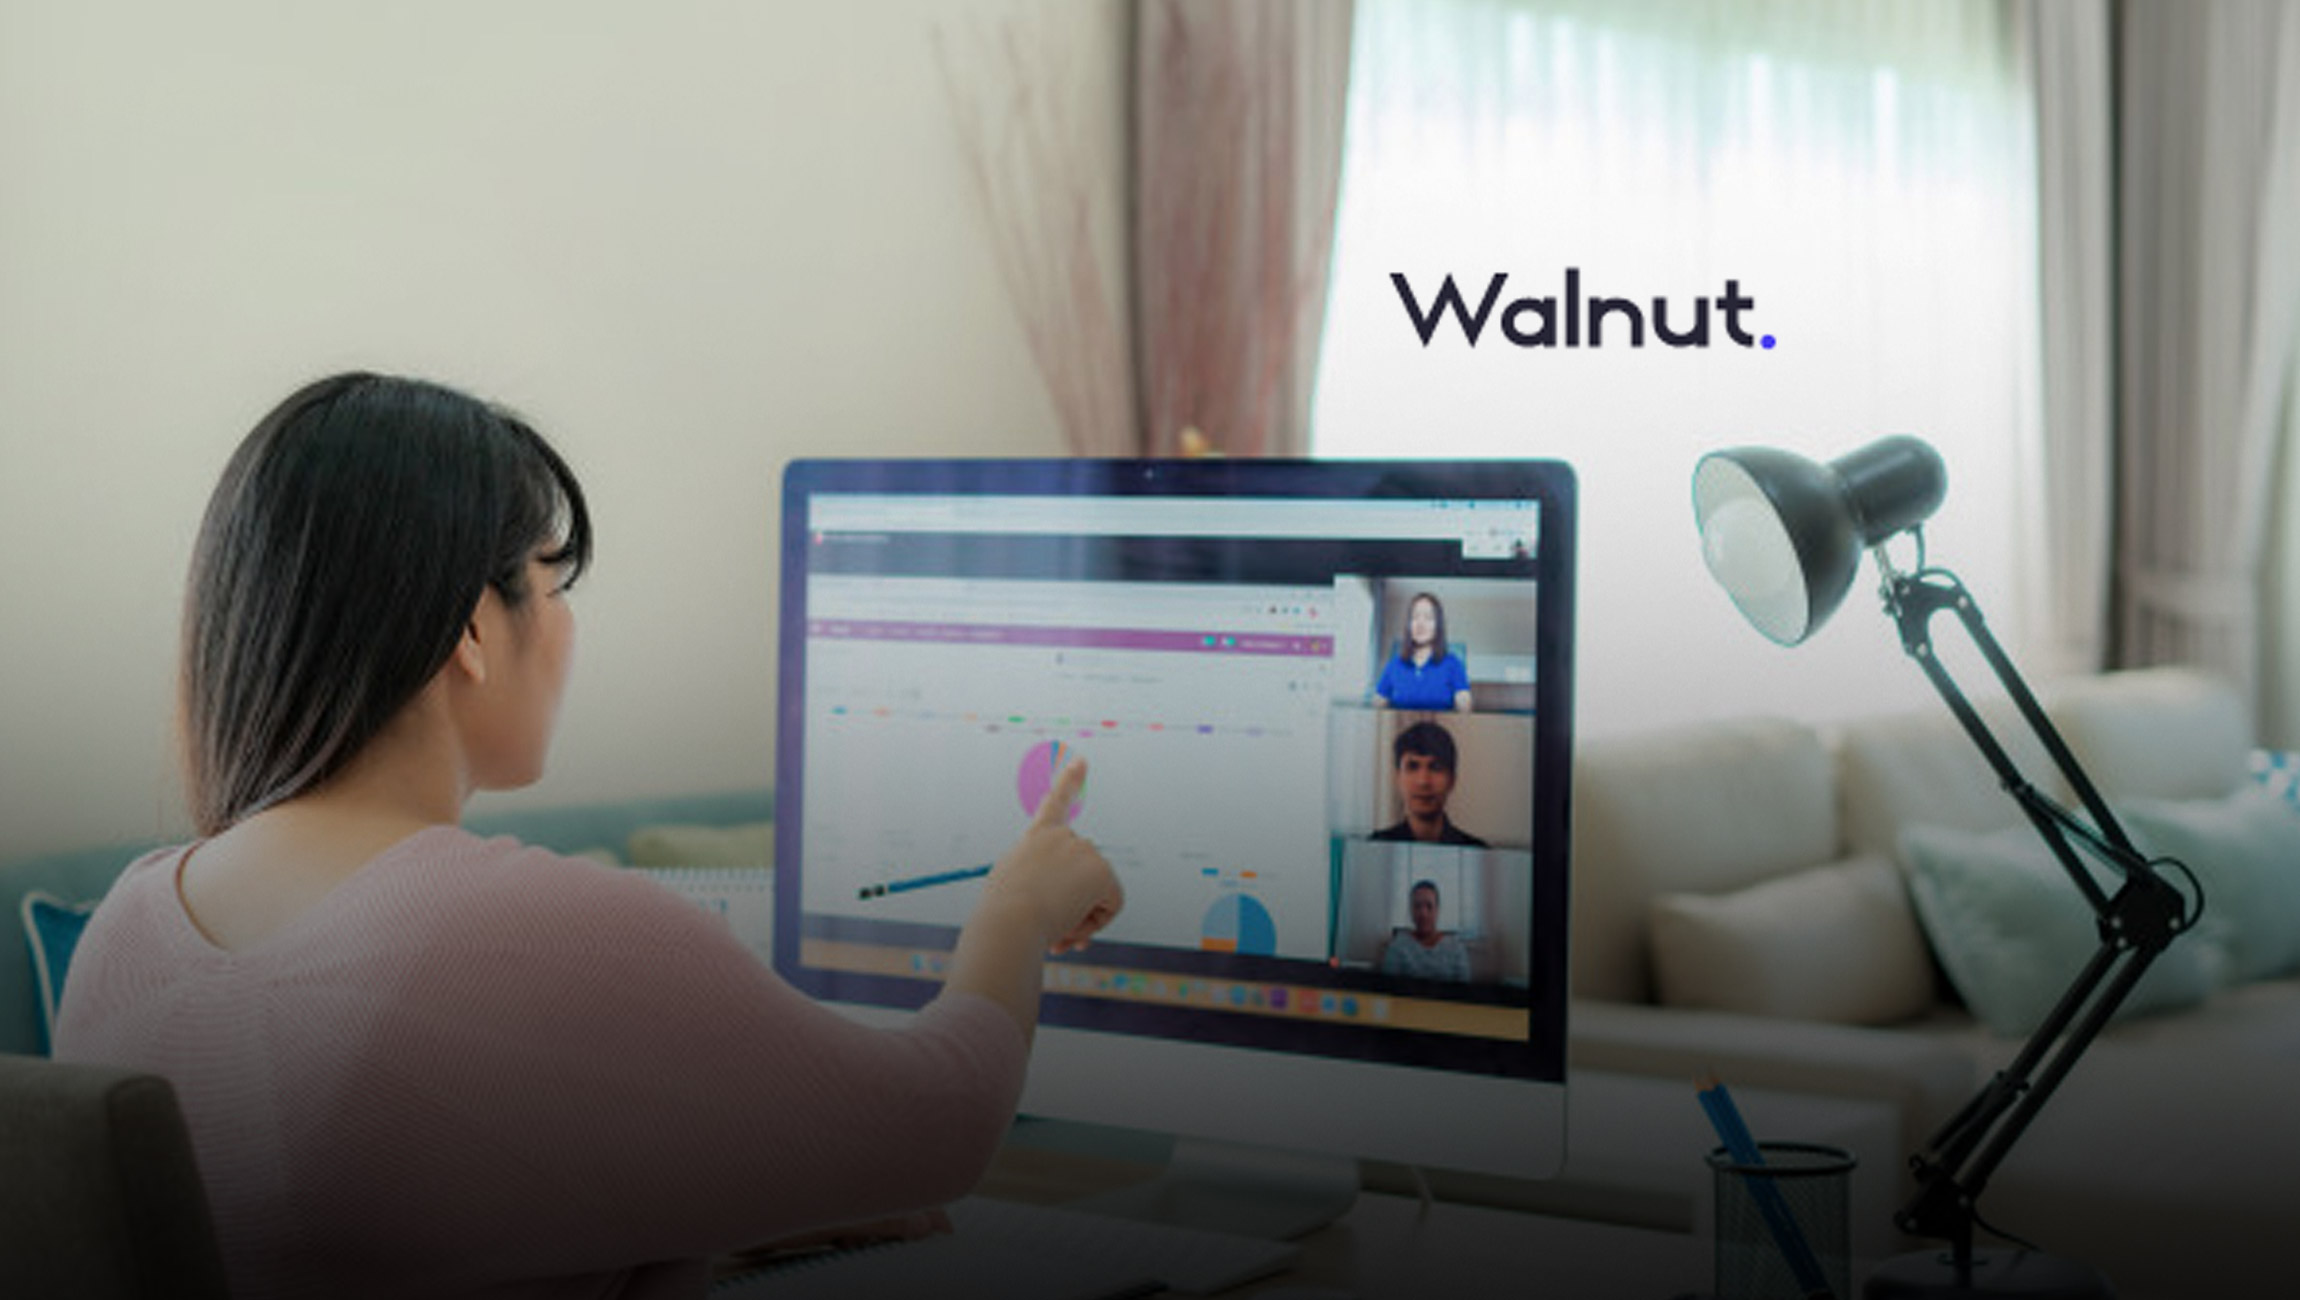 Walnut Launches World's First Sales Experience Platform